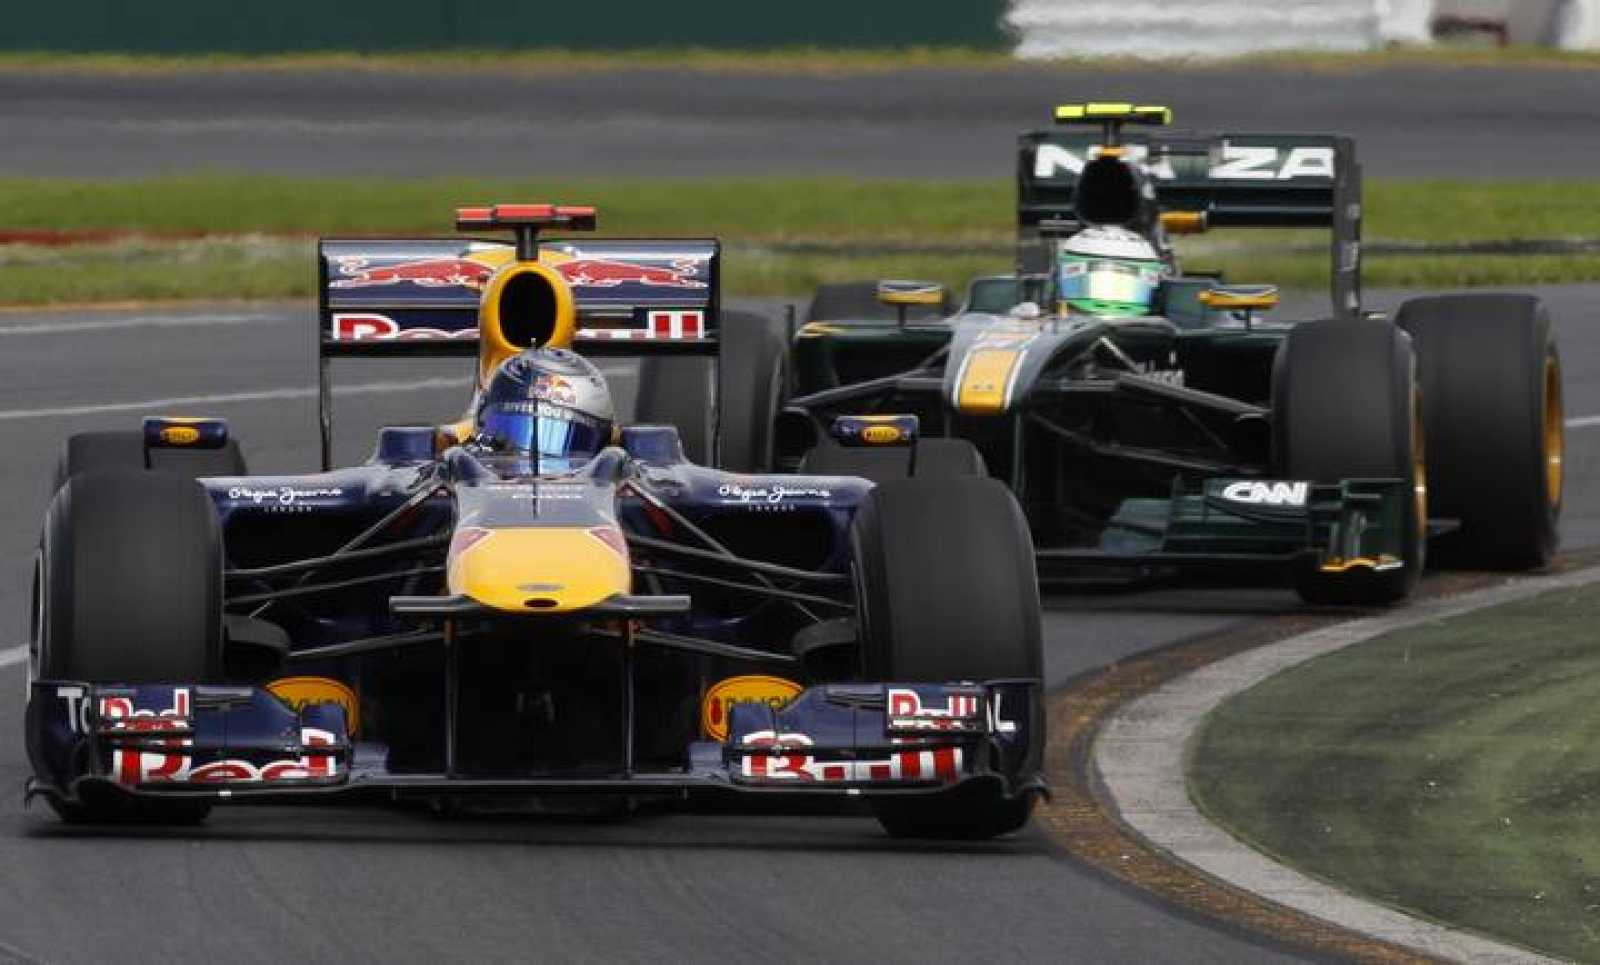 Red Bull Formula One driver Sebastian Vettel of Germany drives ahead of Lotus F1 driver Heikki Kovalainen of Finland during the first practice session of the Australian F1 Grand Prix in Melbourne